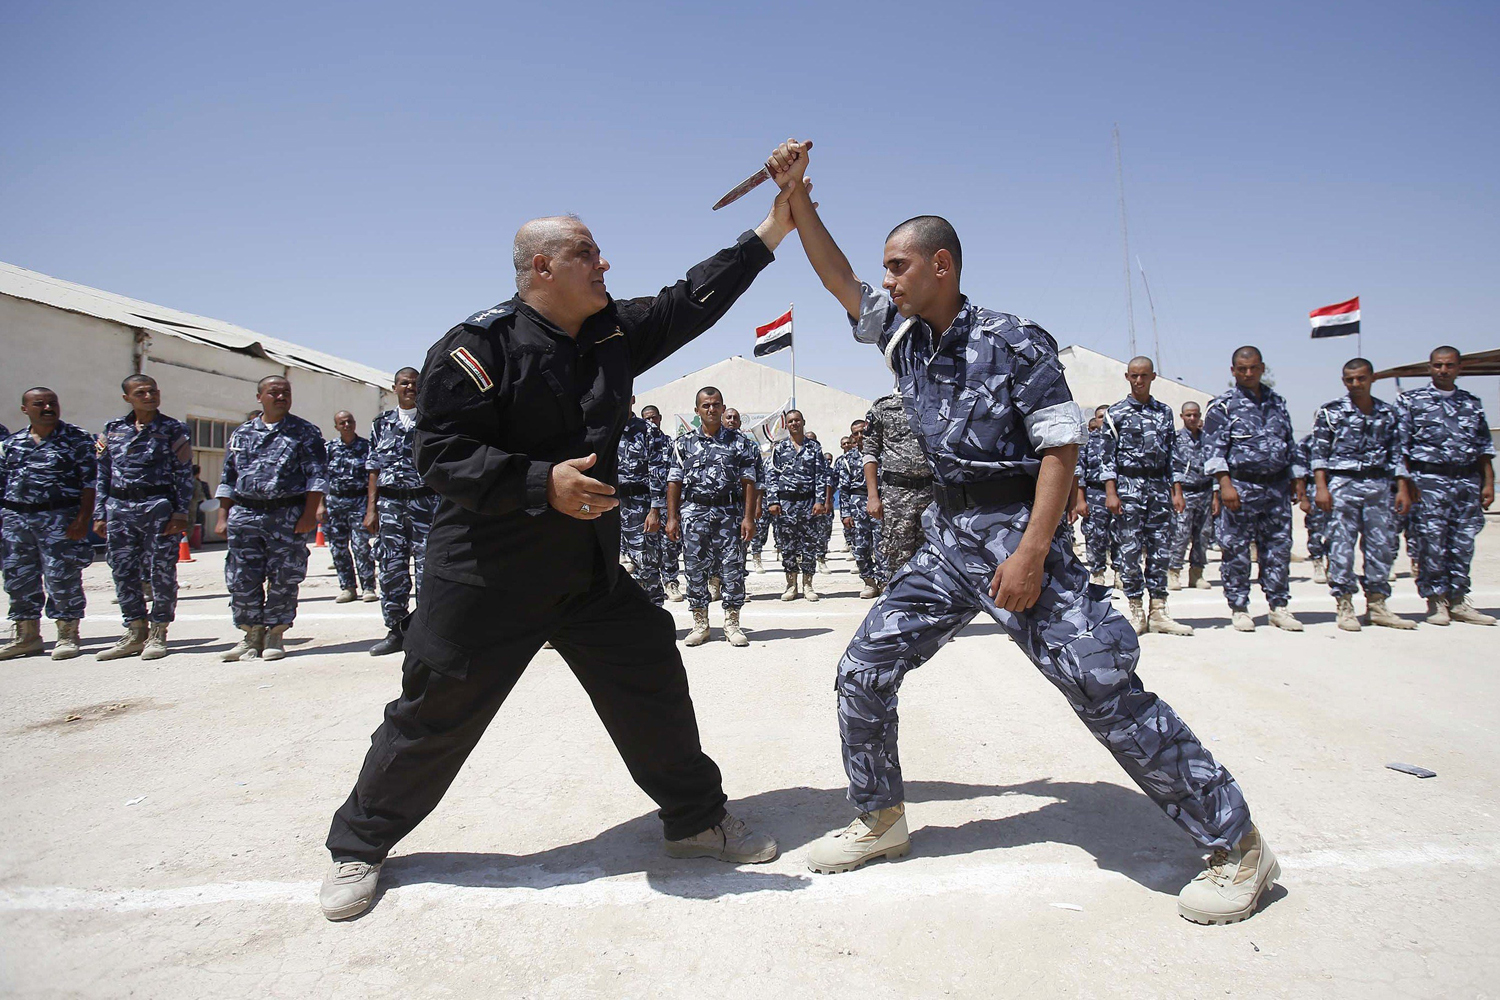 Newly-recruited Iraqi volunteers, wearing police forces uniforms, take part in a training session on June 17 in the central Shiite city of Karbala.